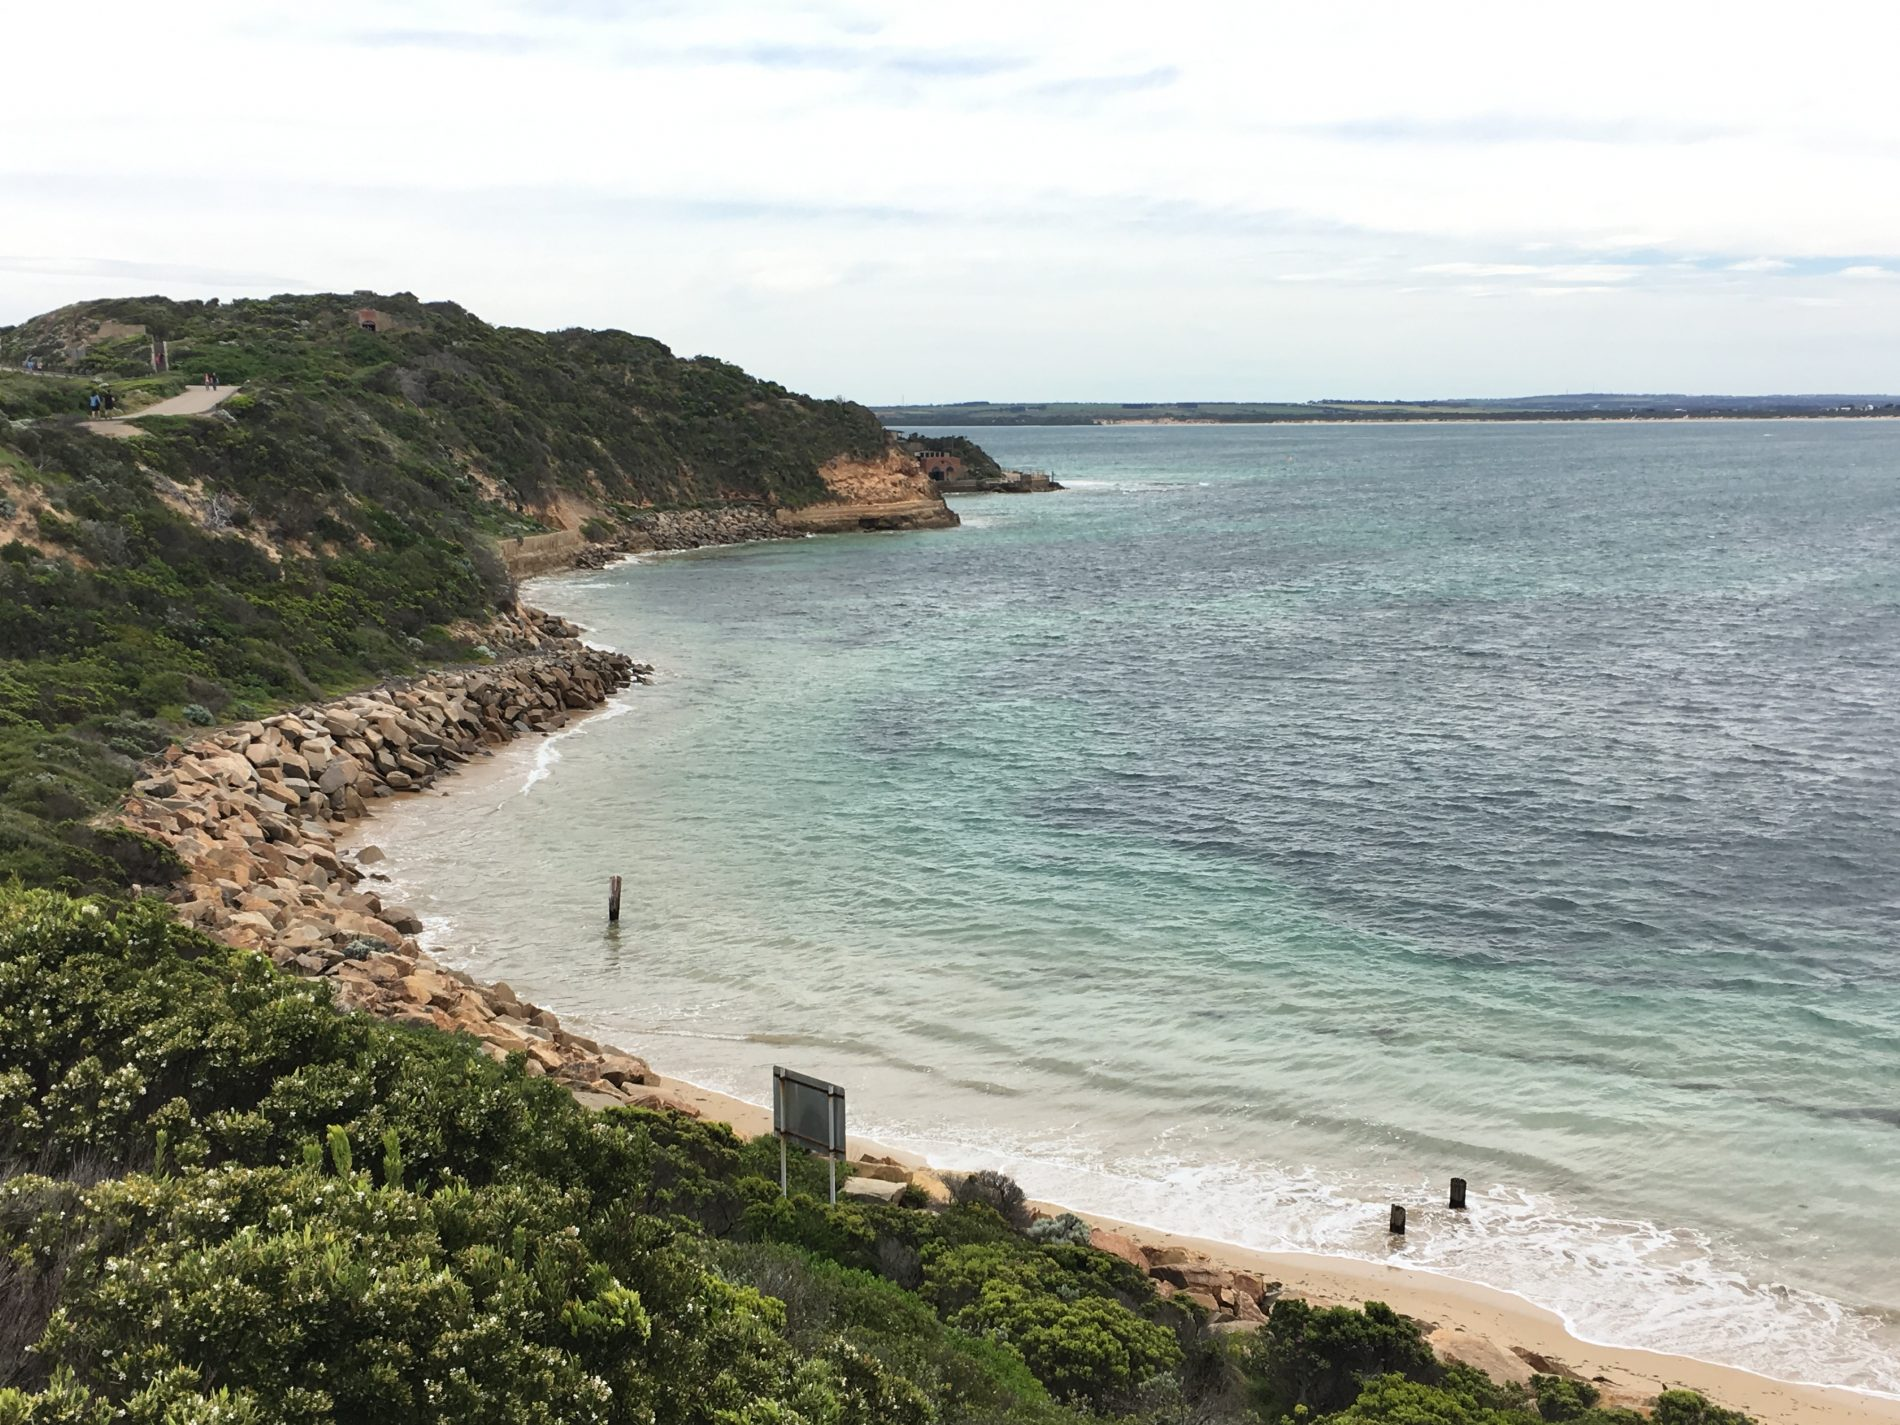 quoi faire autour de Melbourne - mornington peninsula - point nepean